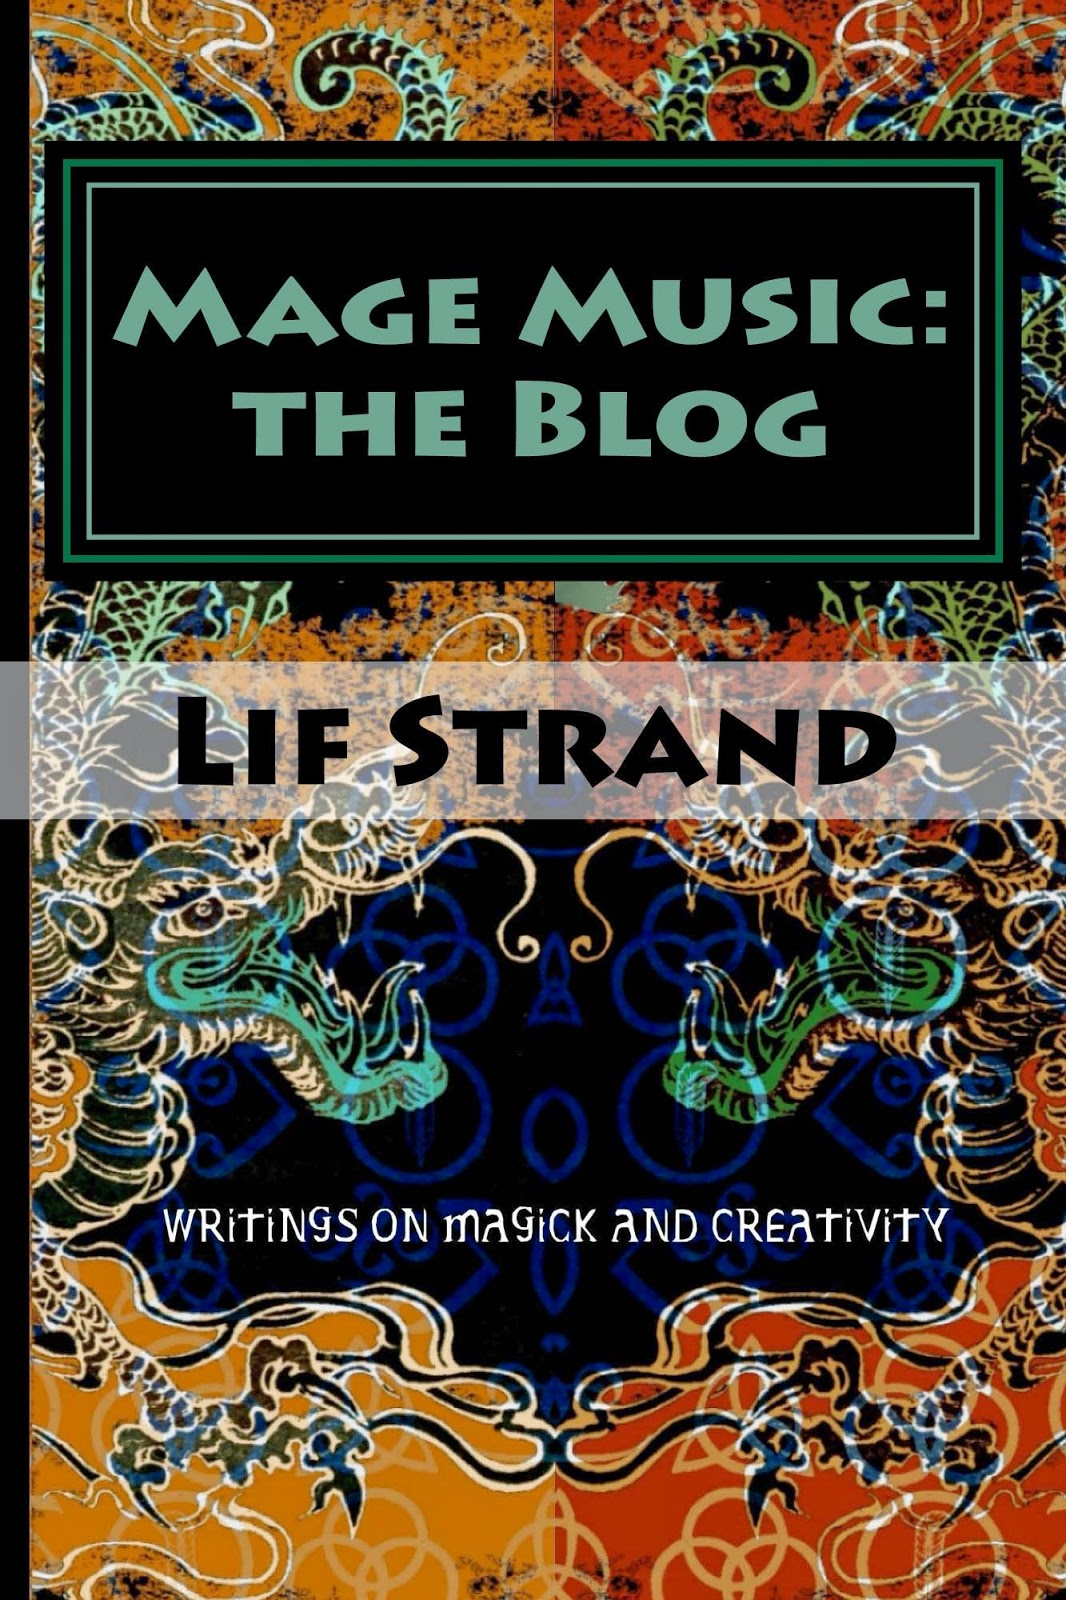 Mage Music: the Blog - now available in paperback